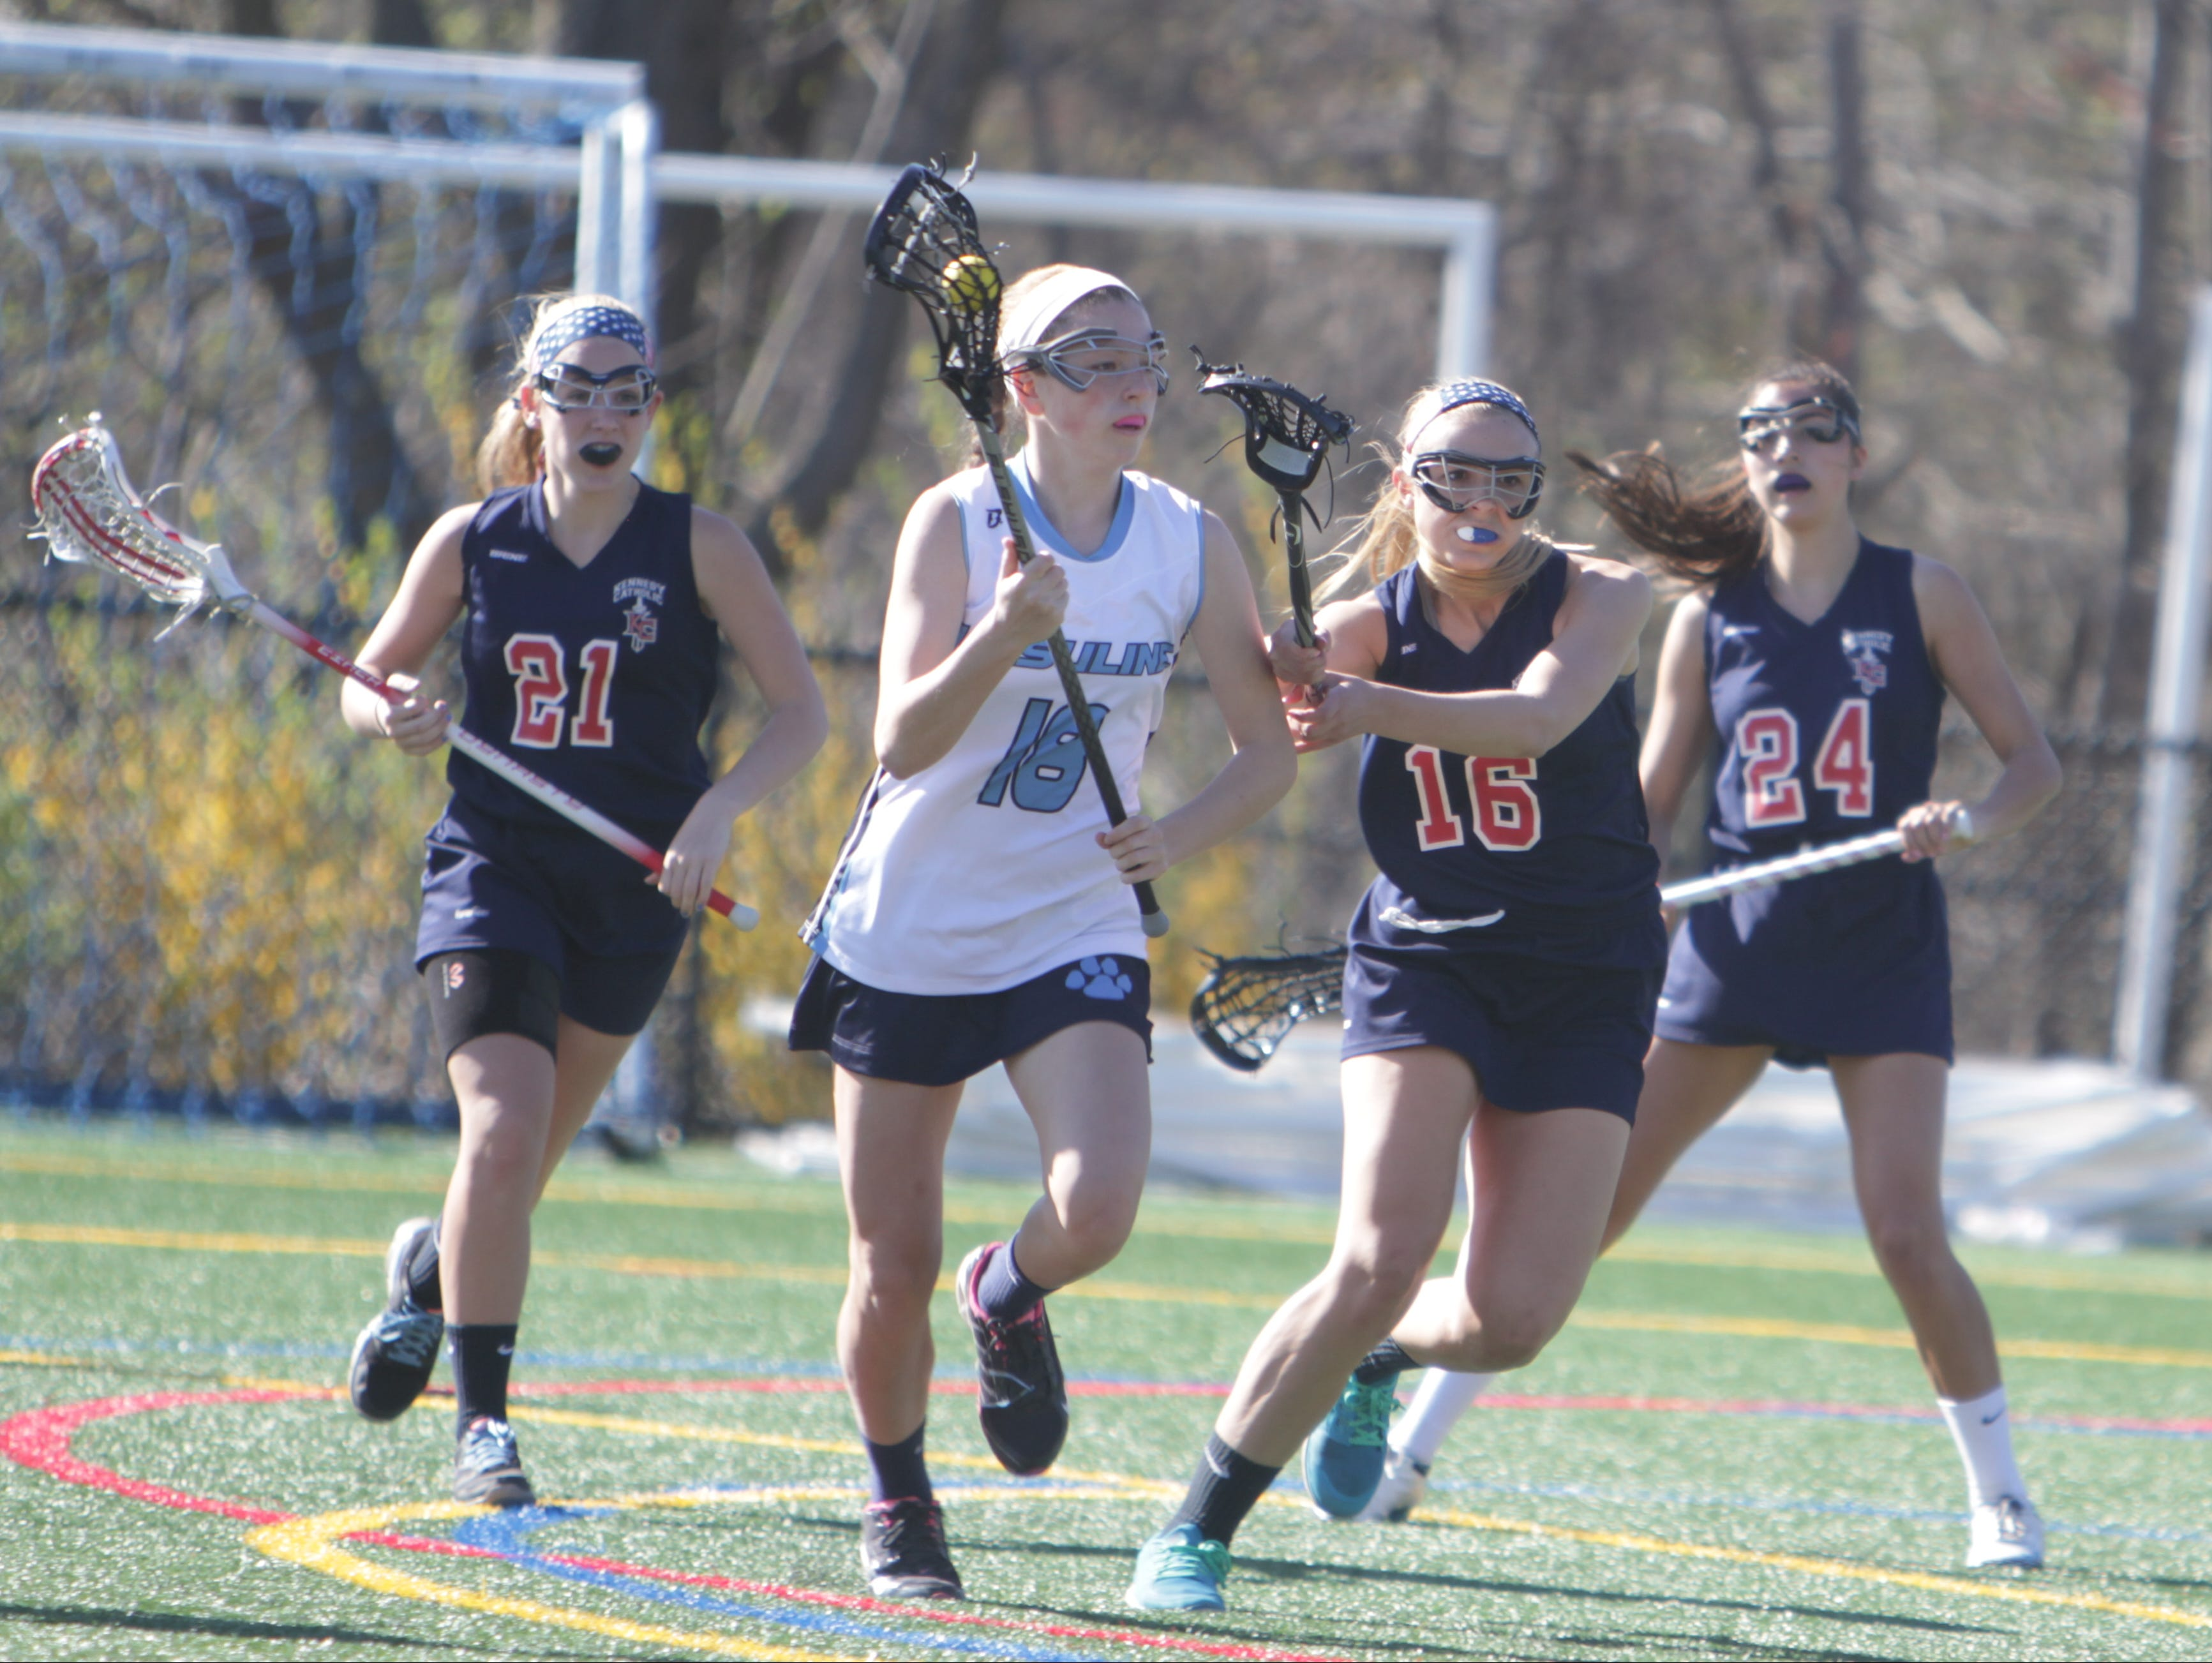 Action during a girls lacrosse game between Ursuline and Kennedy at the Ursuline School on Tuesday, April 19th, 2016. Ursuline won 18-10.